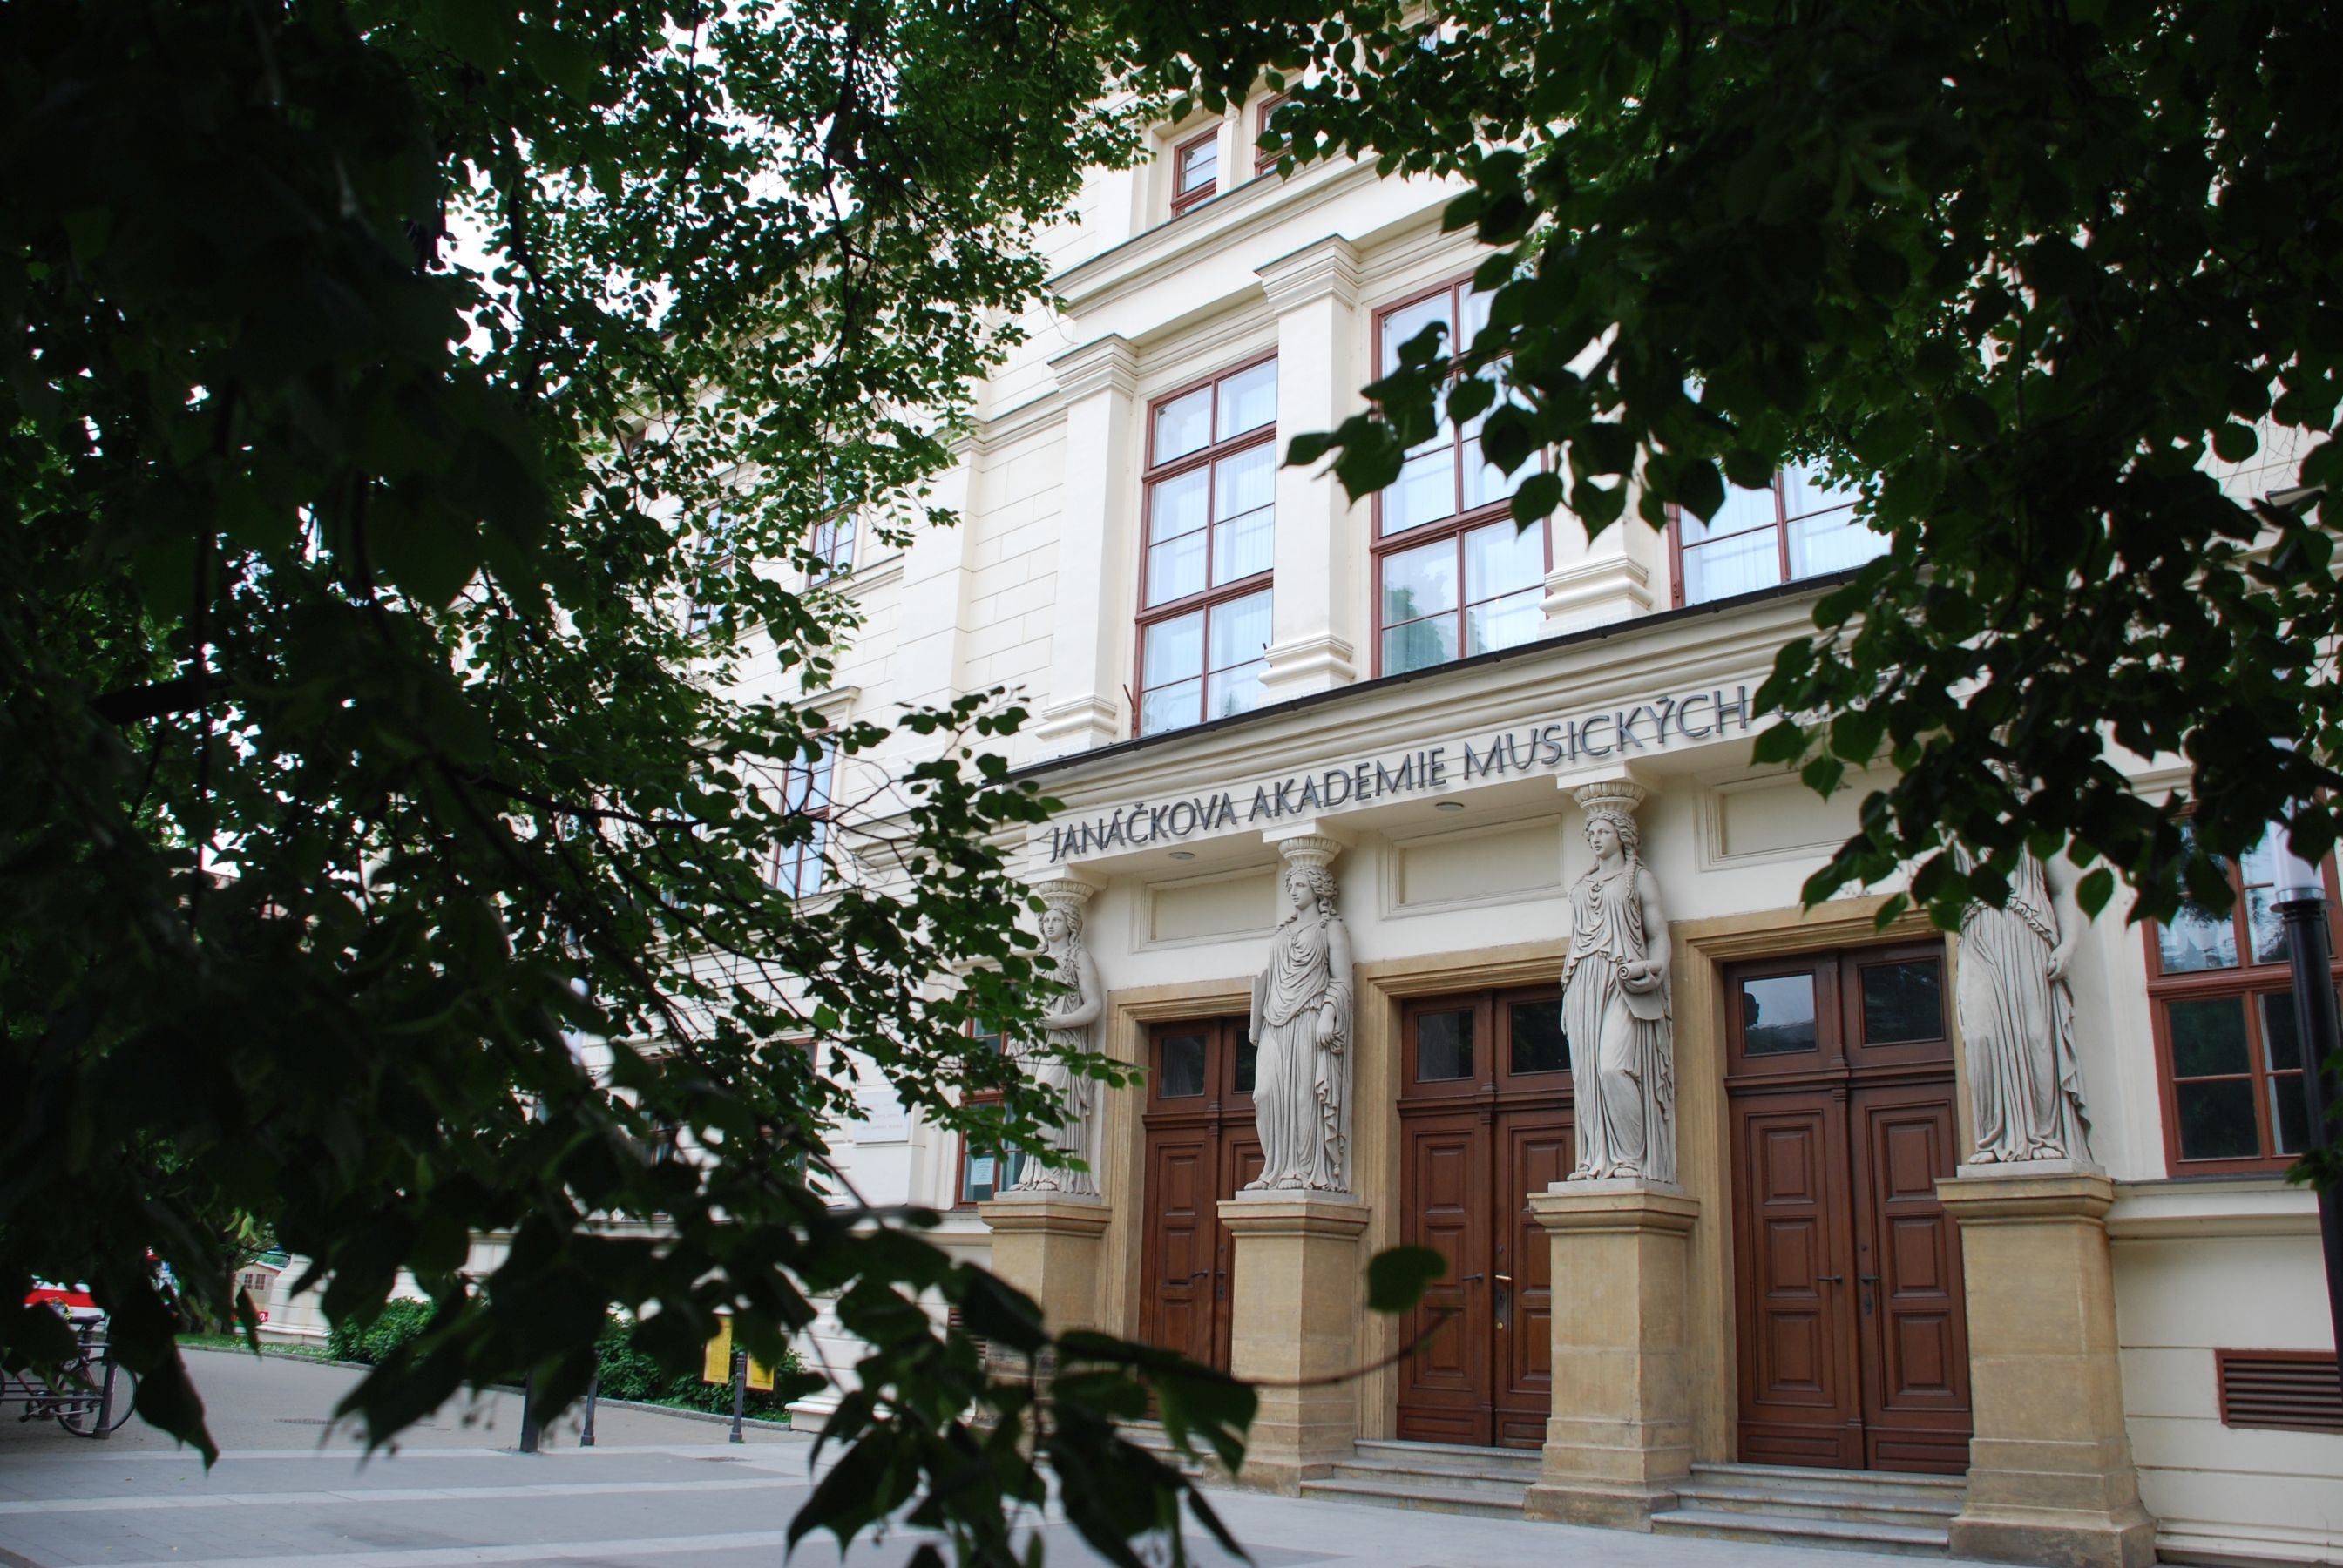 Faculty of Music of the Janáček Academy of Performing Arts in Brno (JAMU)